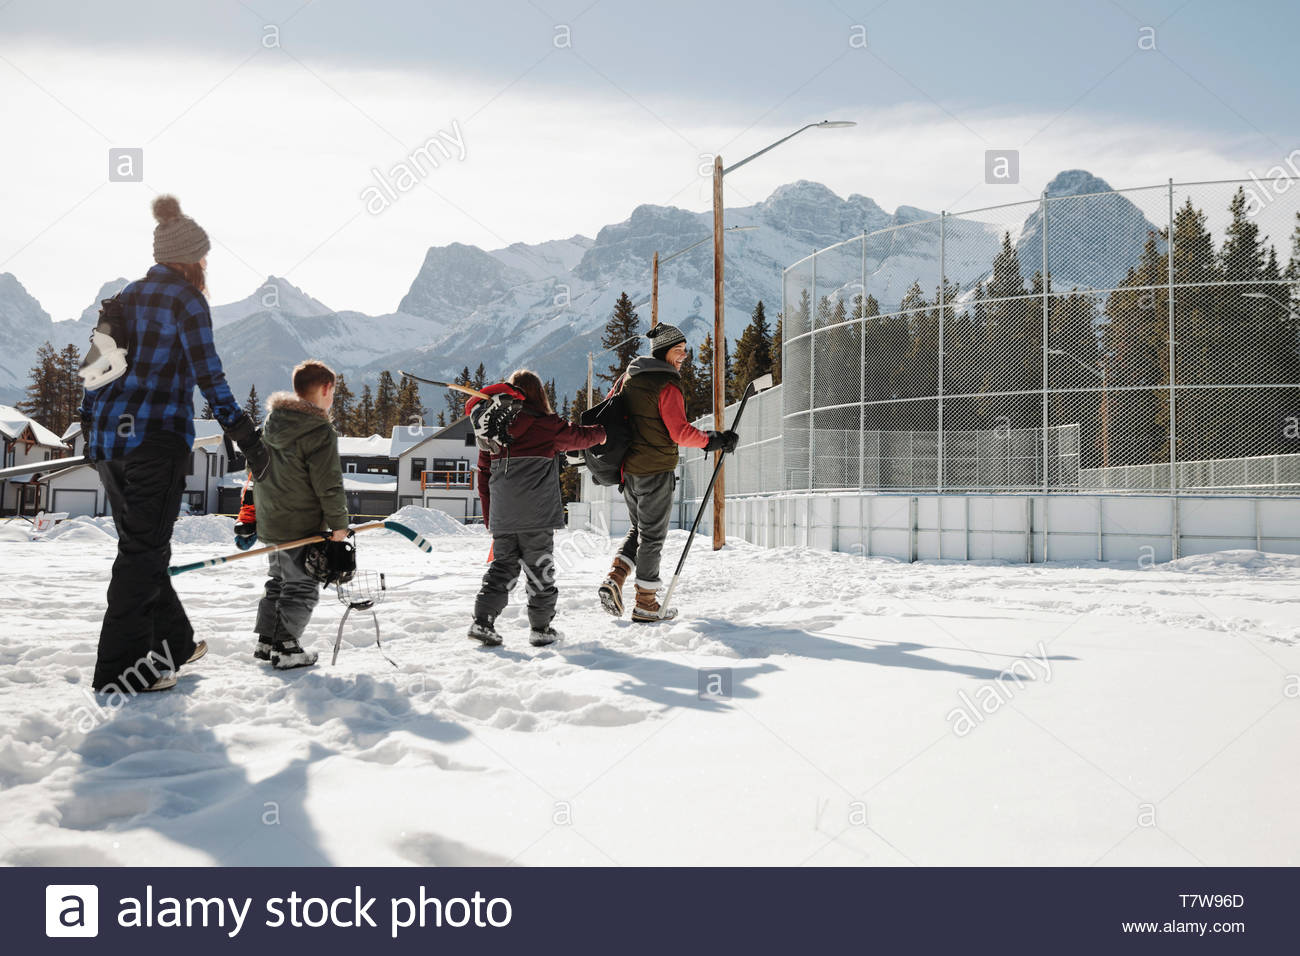 Family walking toward outdoor ice hockey rink - Stock Image